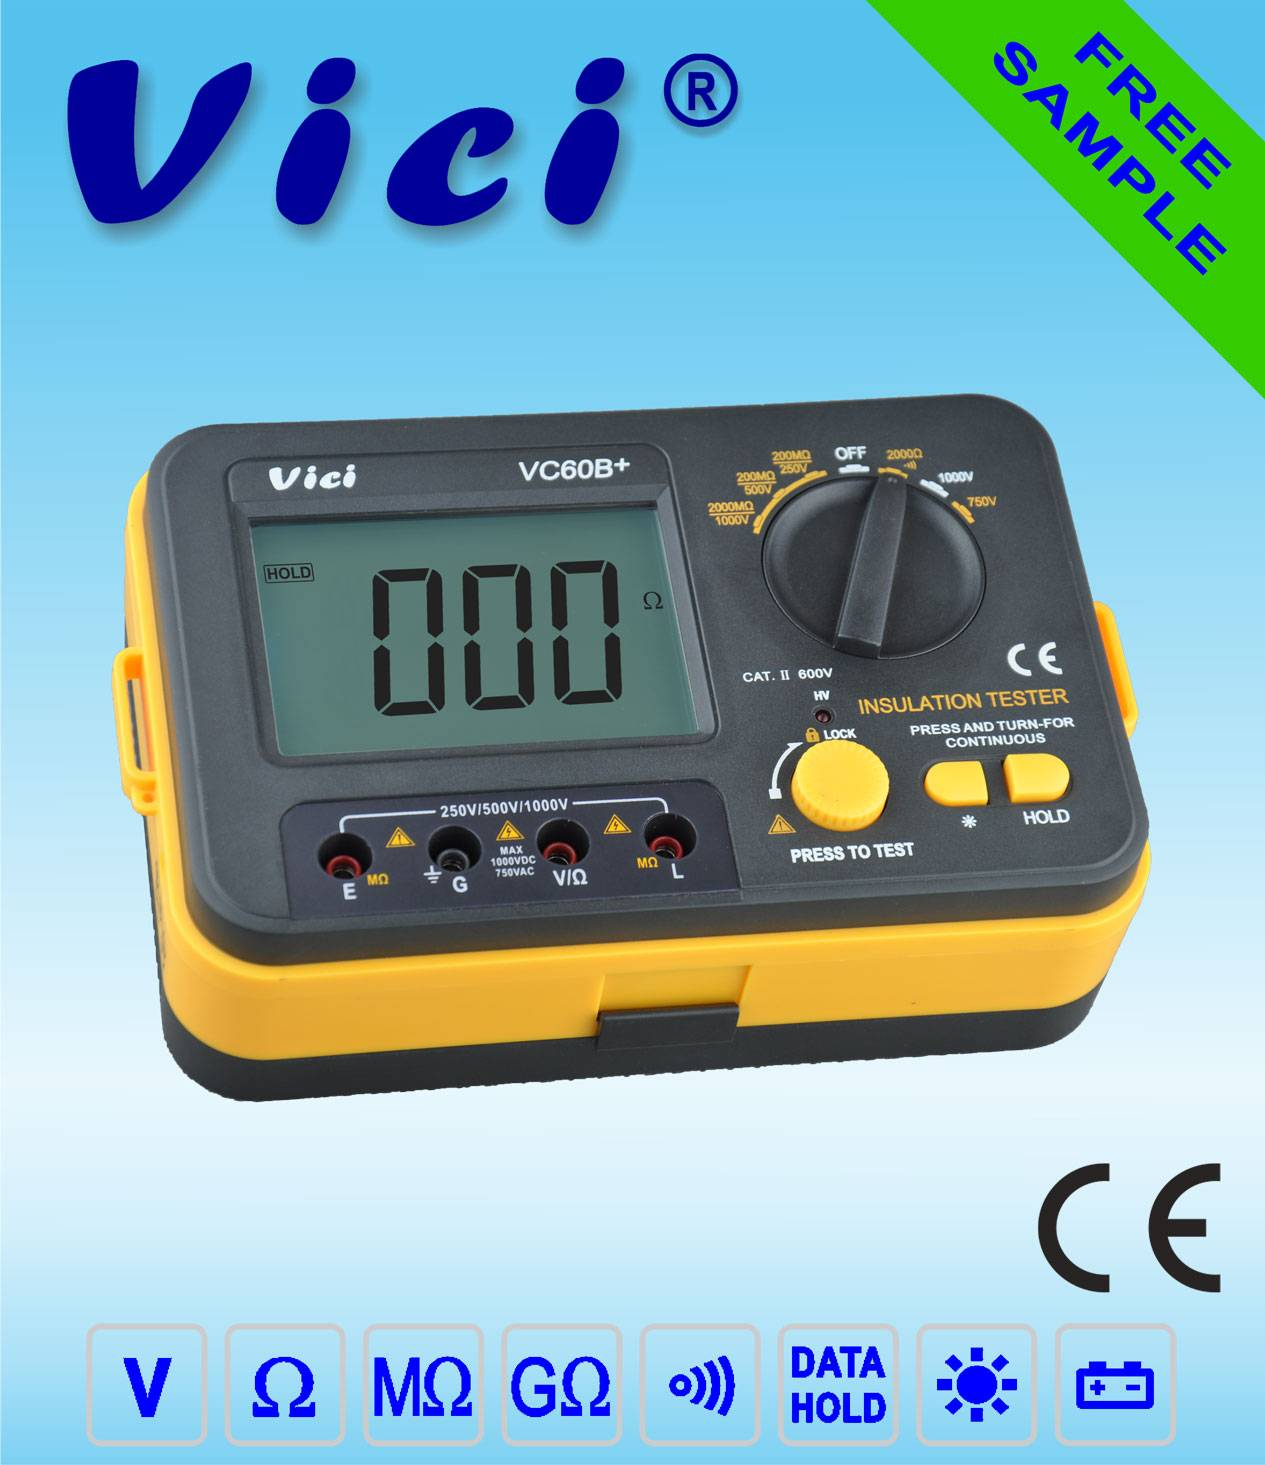 VC60B+  Insulation Tester